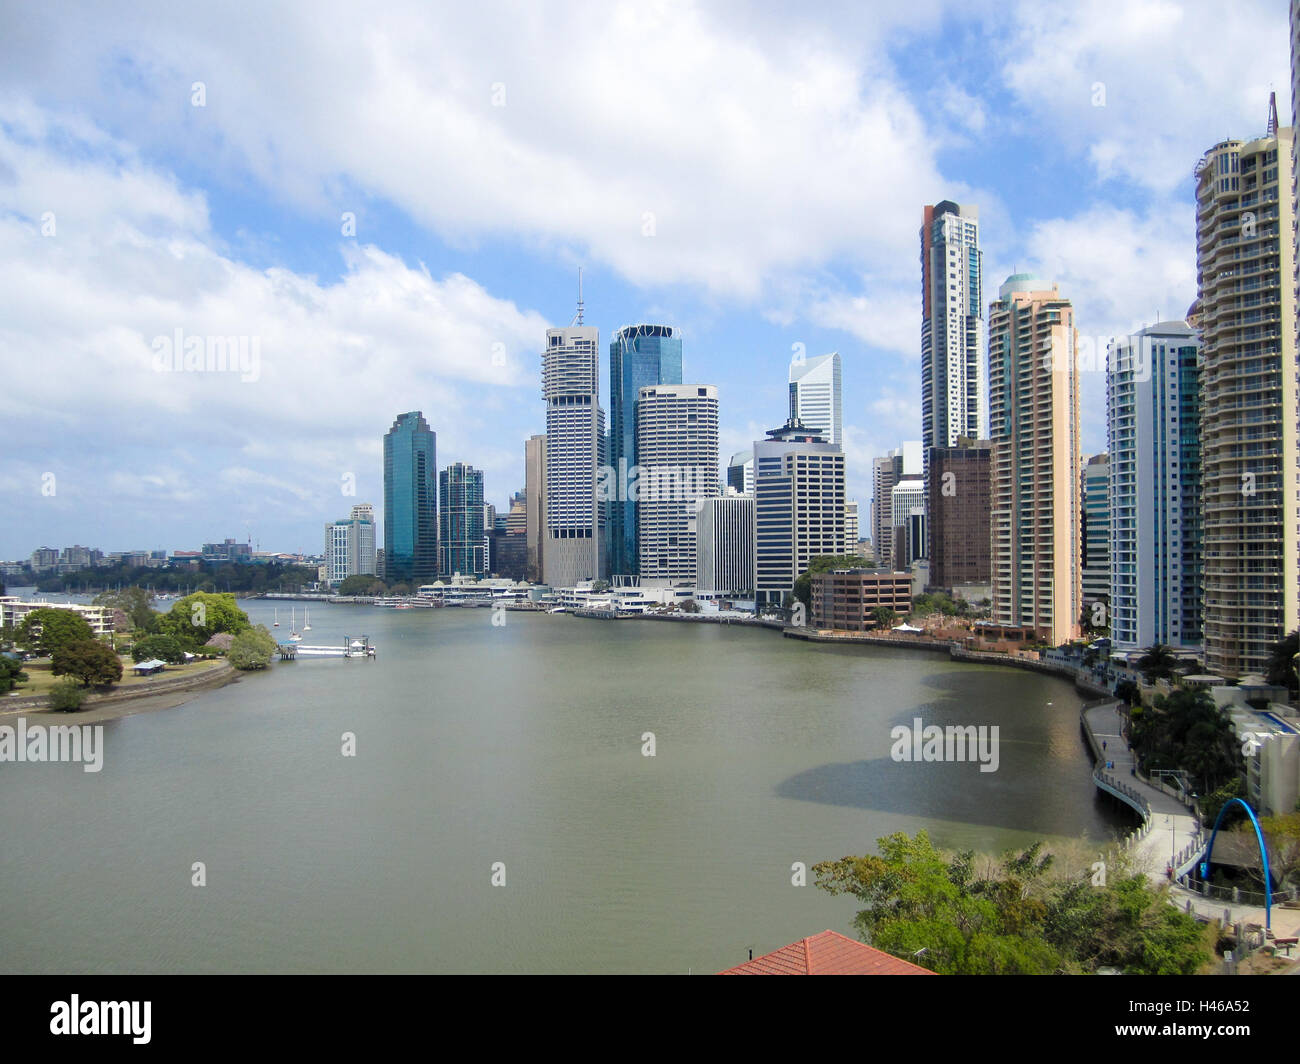 The dramatic high-rise buildings of Brisbane's central business district overlook the wide Brisbane River - Stock Image